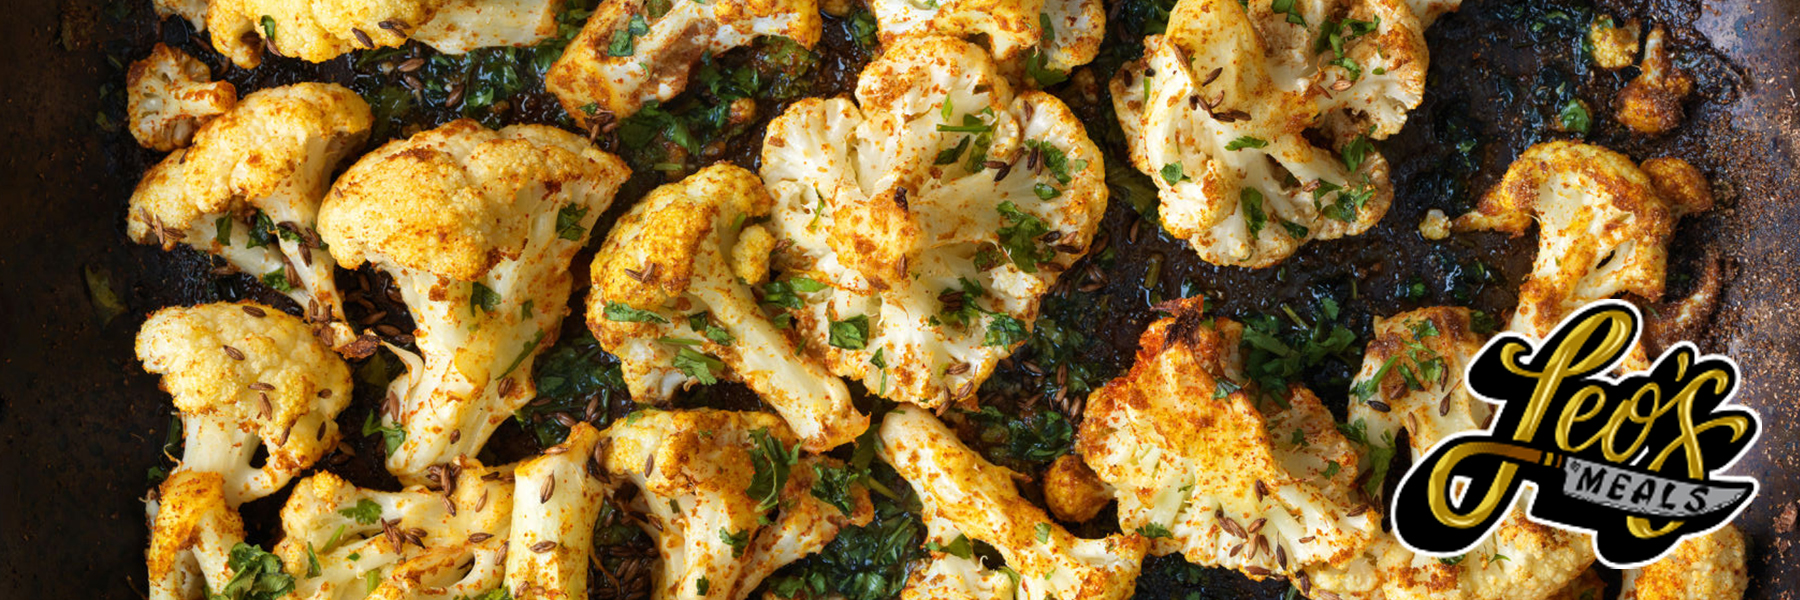 Cauliflower Benefits & Recipes- One of the Worlds Healthiest Foods